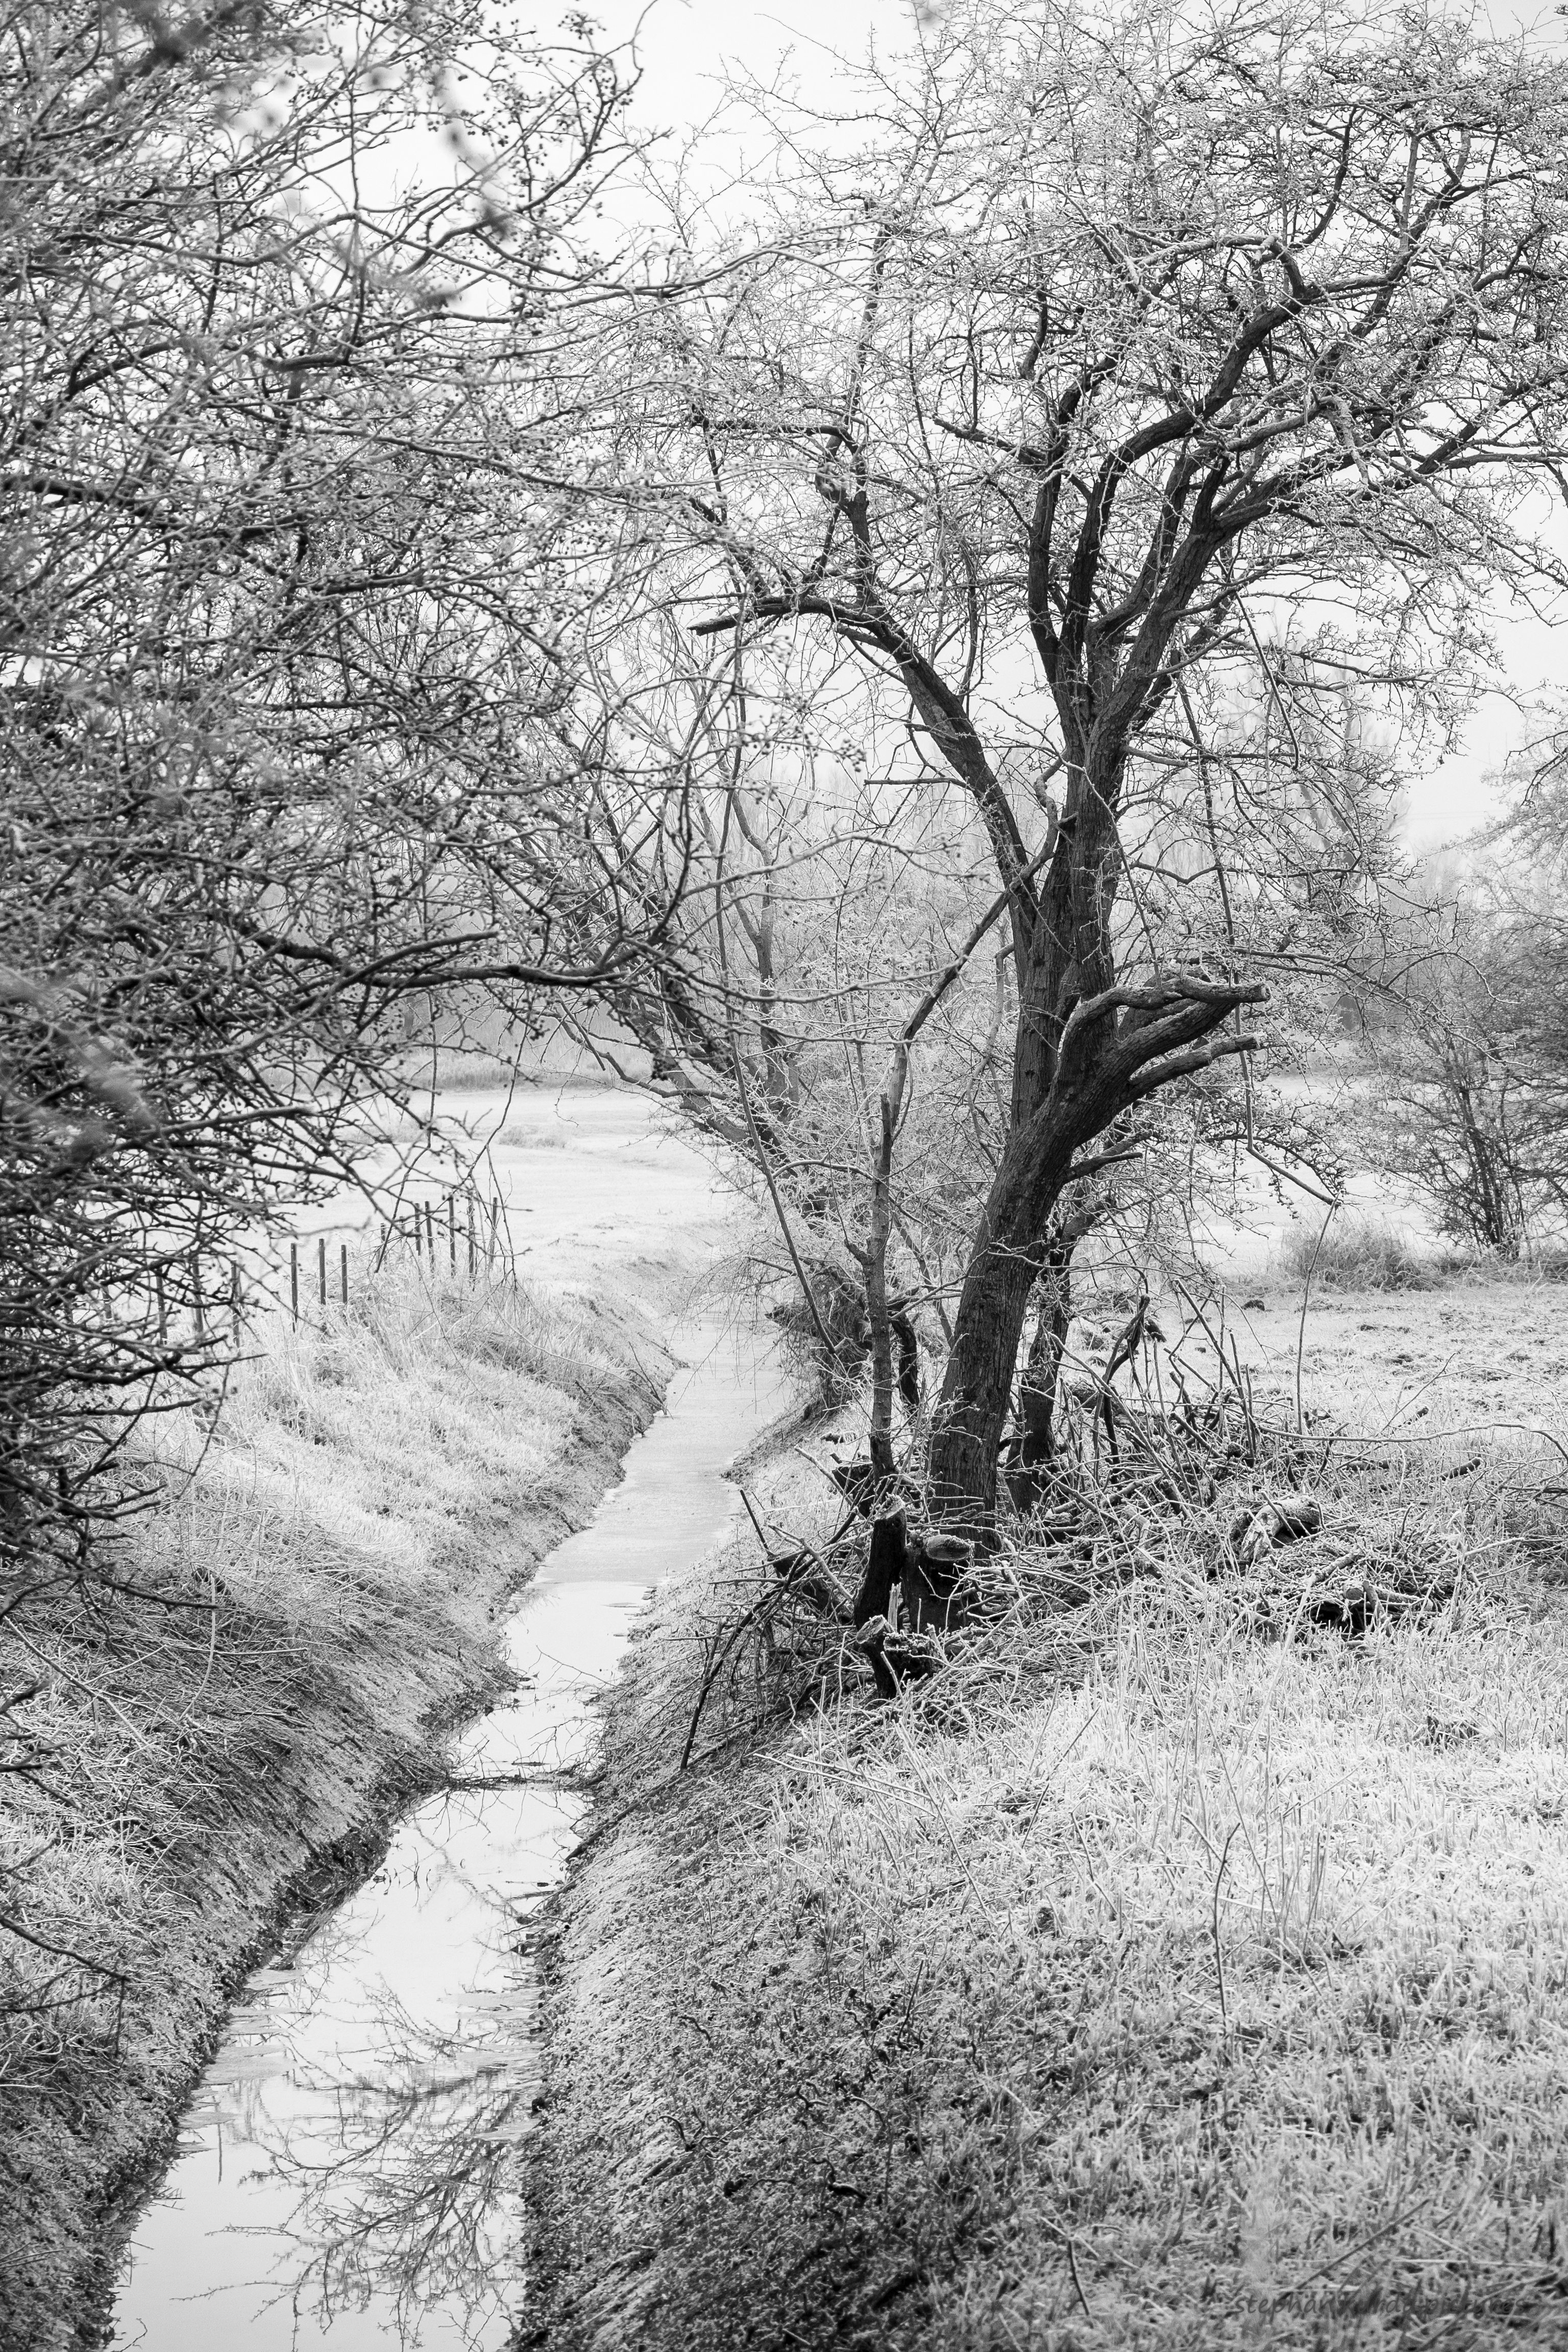 Winter scene in b/w